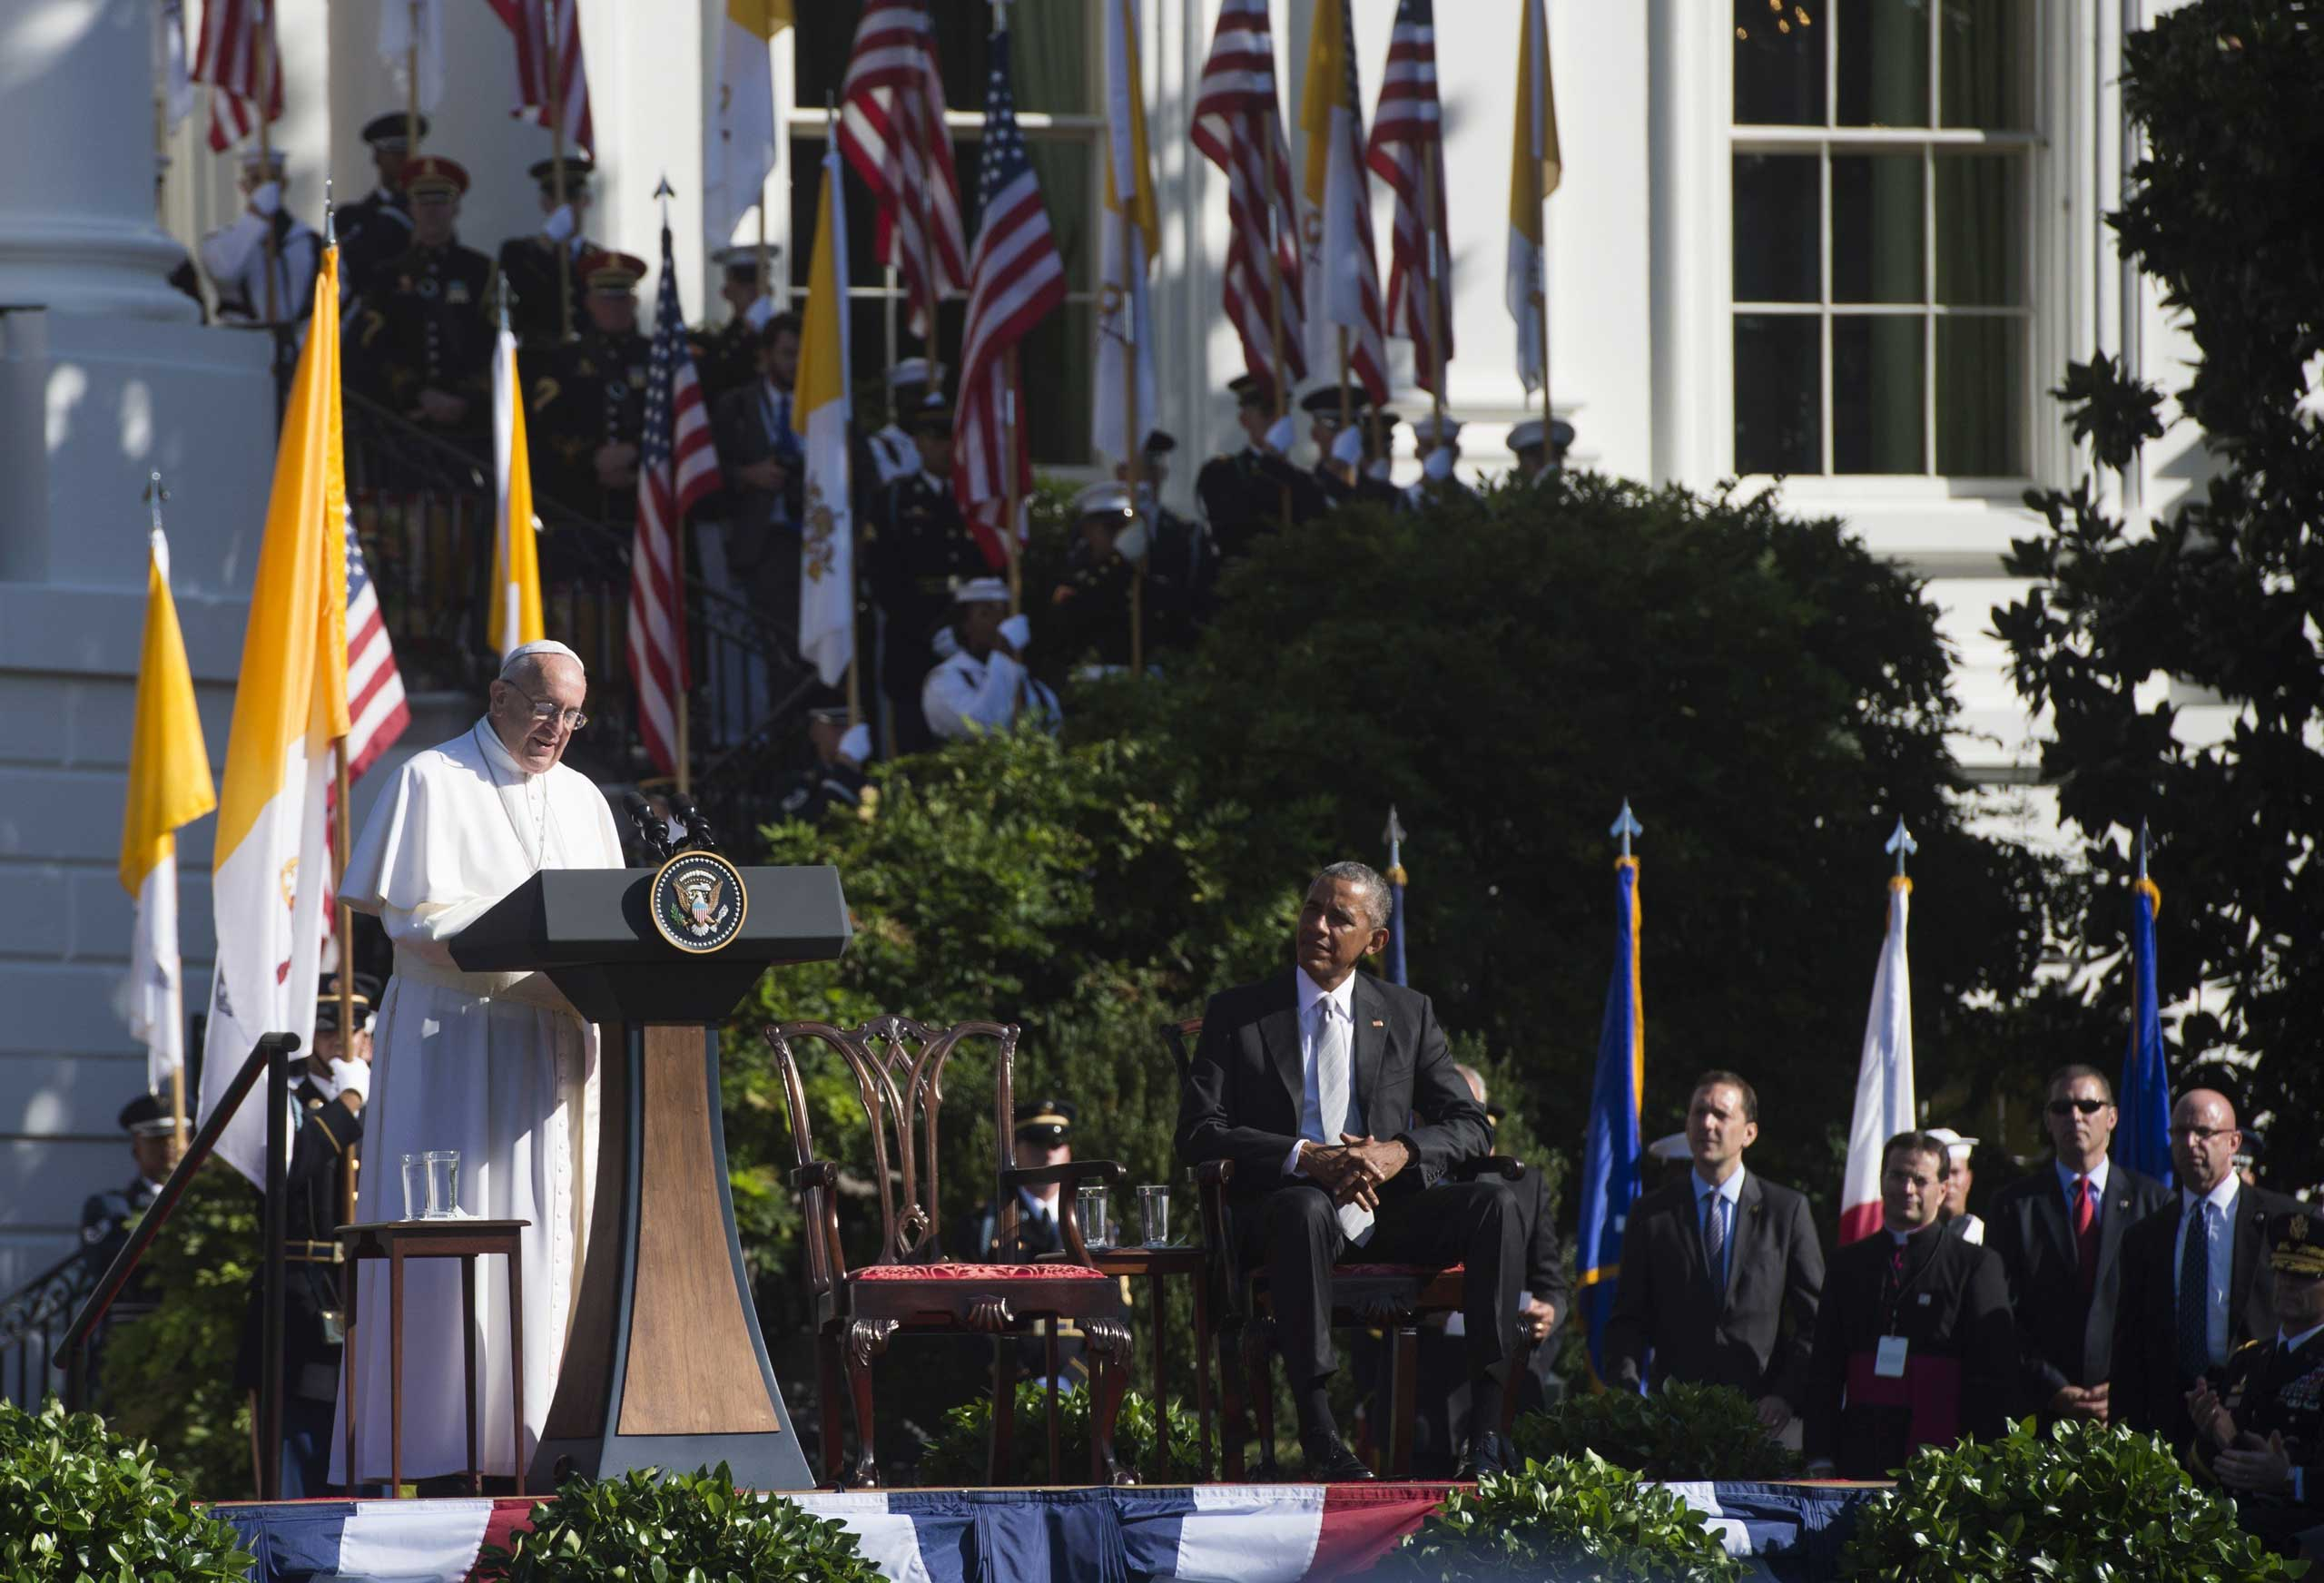 Pope Francis speaks alongside President Barack Obama during an arrival ceremony on the South Lawn of the White House in Washington, on Sept. 23, 2015.